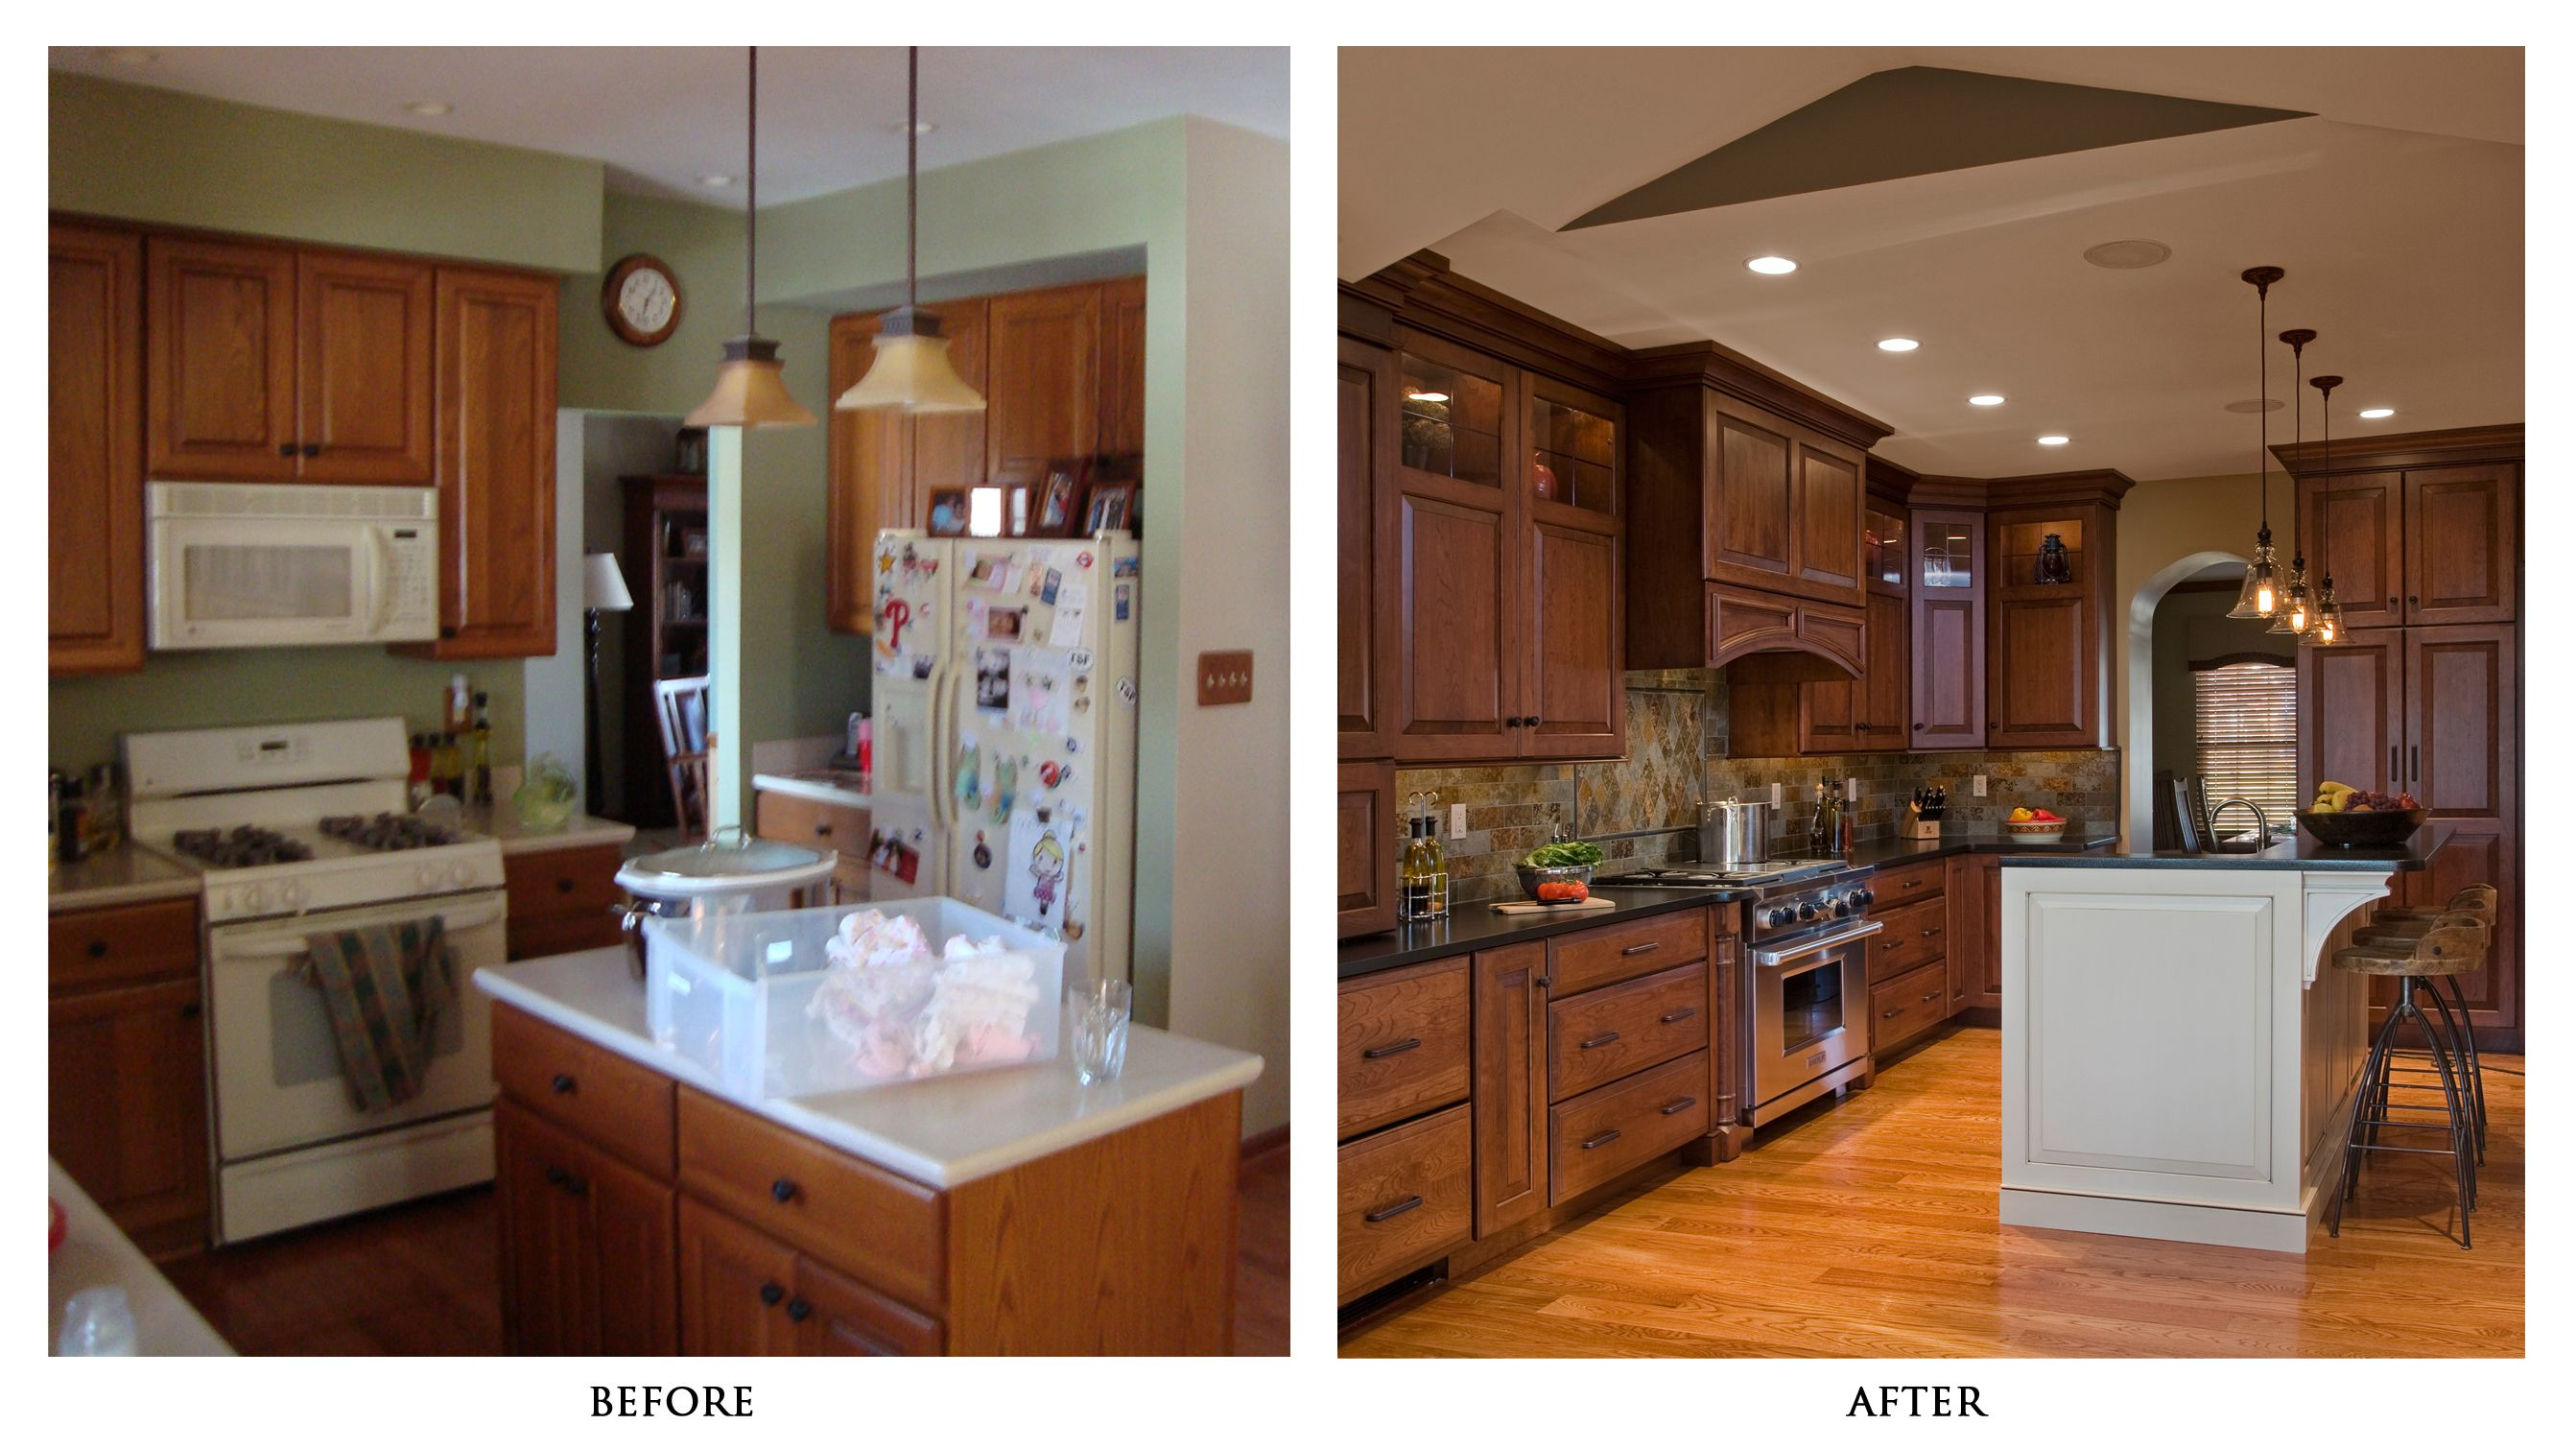 White Kitchen Remodel Before And After kitchen remodels before and after photos | kitchen | pinterest